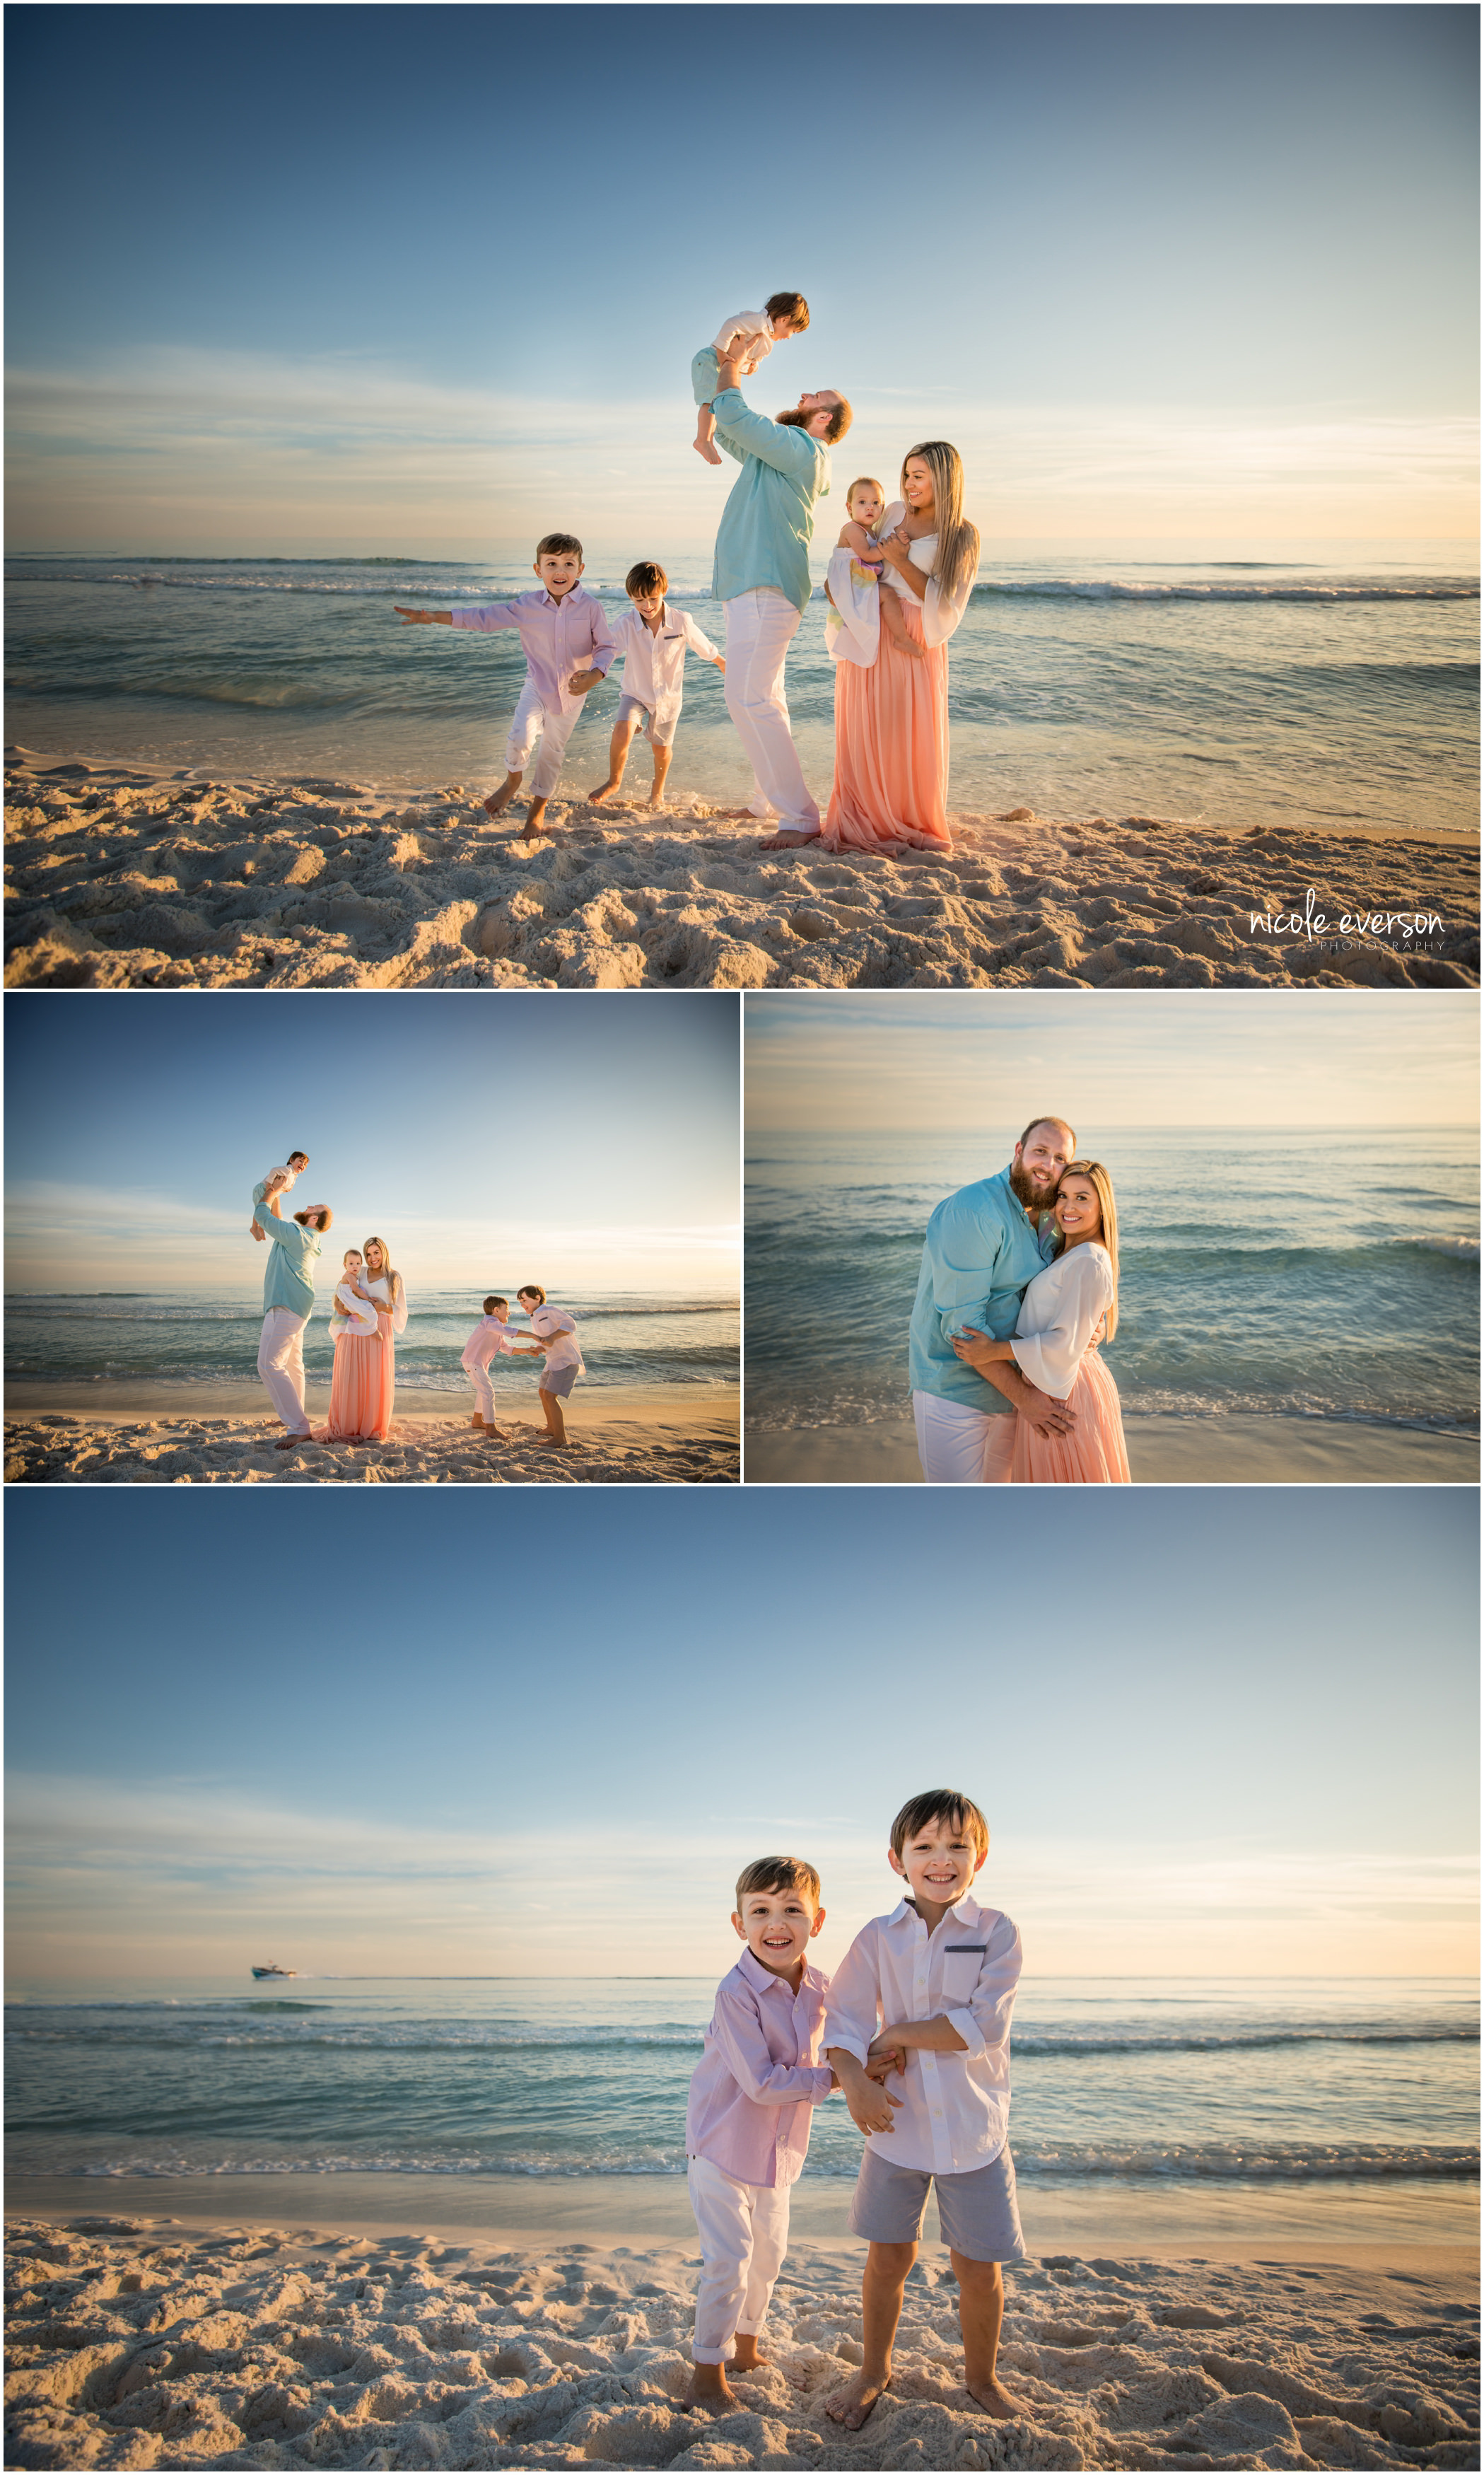 family beach photos taken Destin beach Florida by Nicole Everson Photography